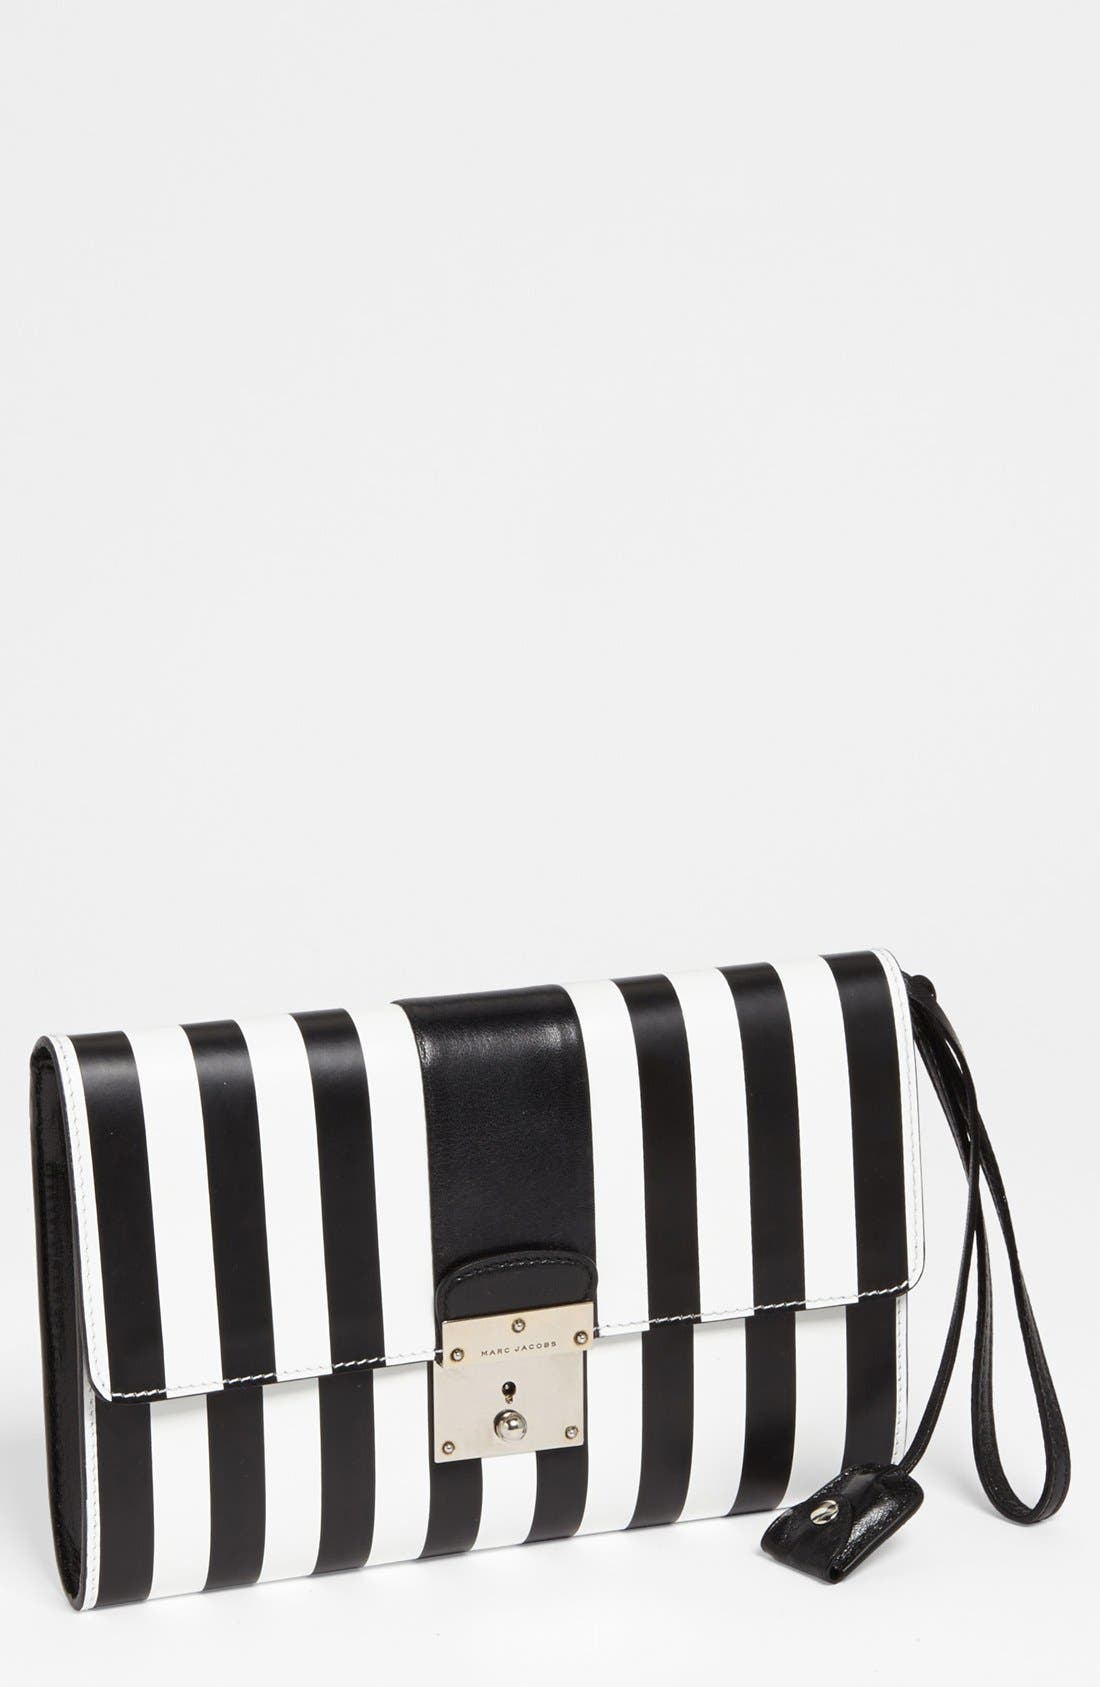 Alternate Image 1 Selected - MARC JACOBS 'Prisoners Isobel' Leather Clutch